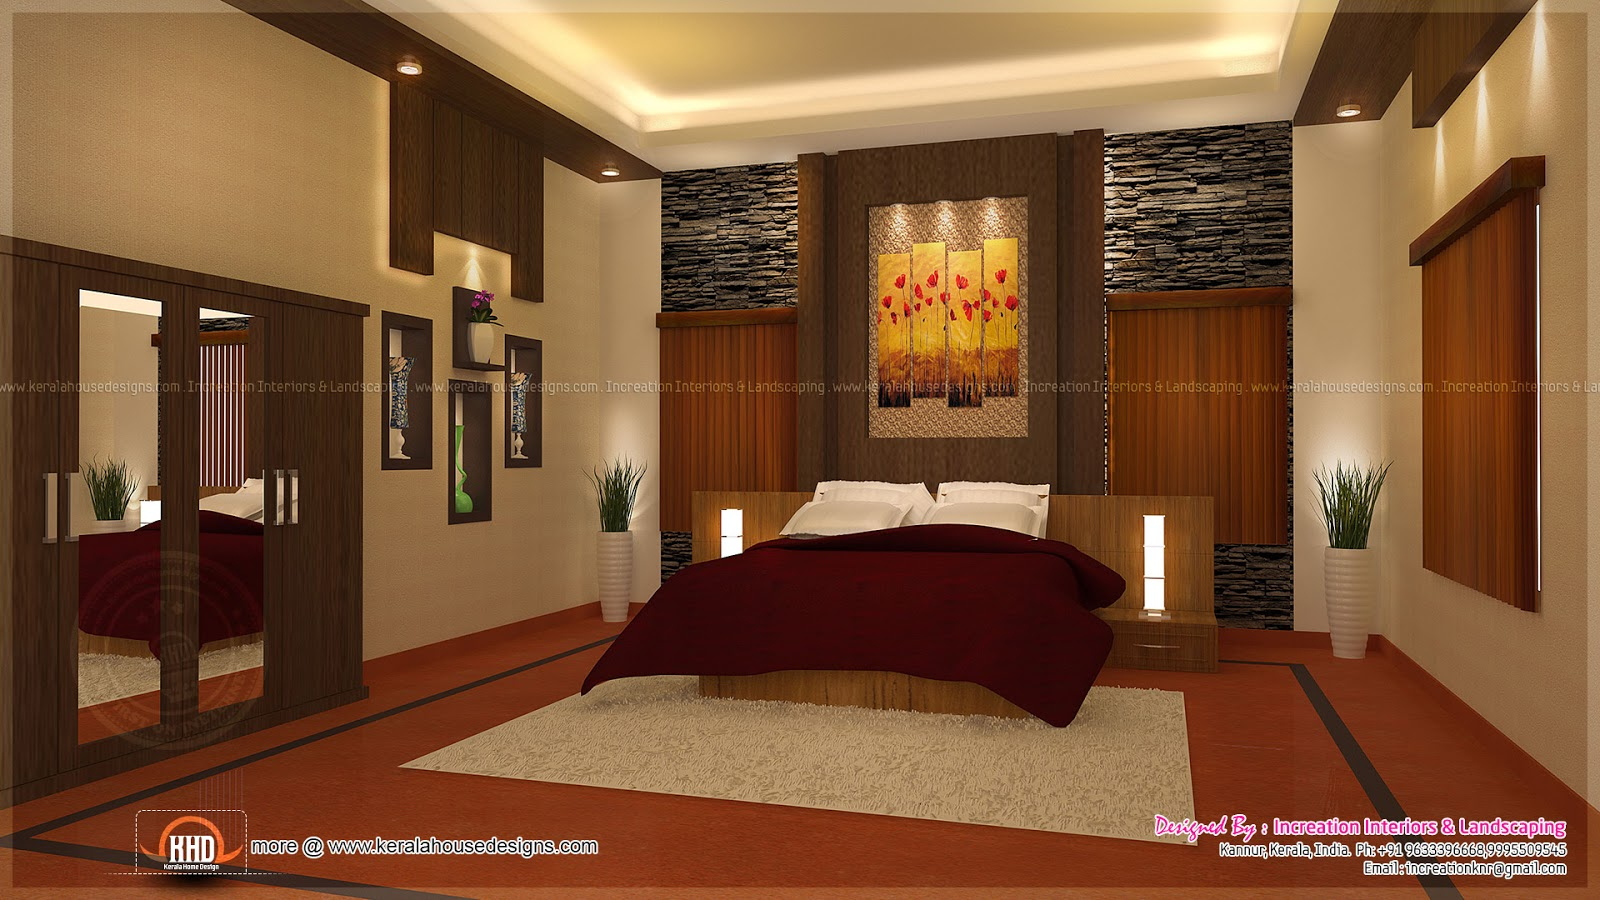 House interior ideas in 3d rendering kerala home design for Design homes interior